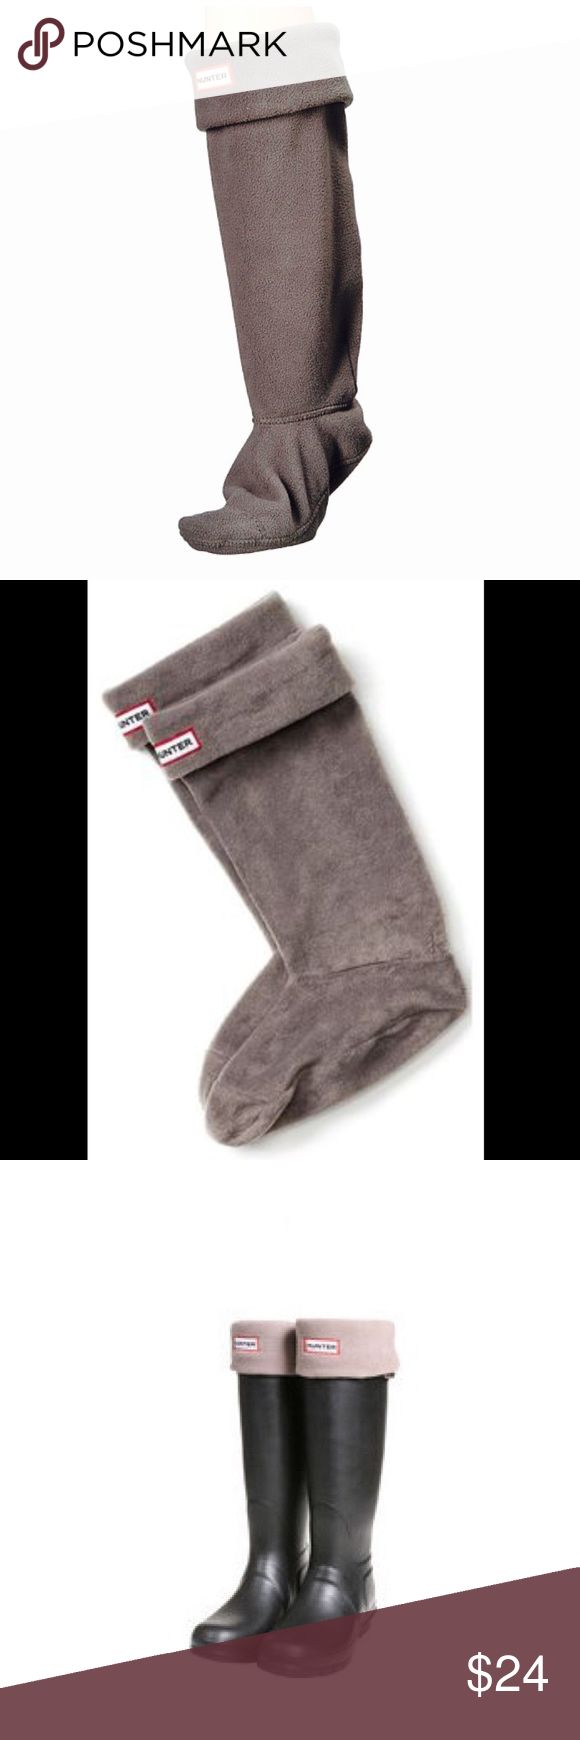 💥Hunter Boot Welly Sock Fleece Liner XL 10-13 Made from warm micro fleece, they will keep your feet cozy and also provide a snug fit in your boots. Not only a practical solution but a great boot accessory or gift for those with Hunter boots. Fleece sock Hunter logo detailing X-Large fits 10B-13B women's. Perfect condition – worn and washed once. Hunter Boots Accessories Hosiery & Socks